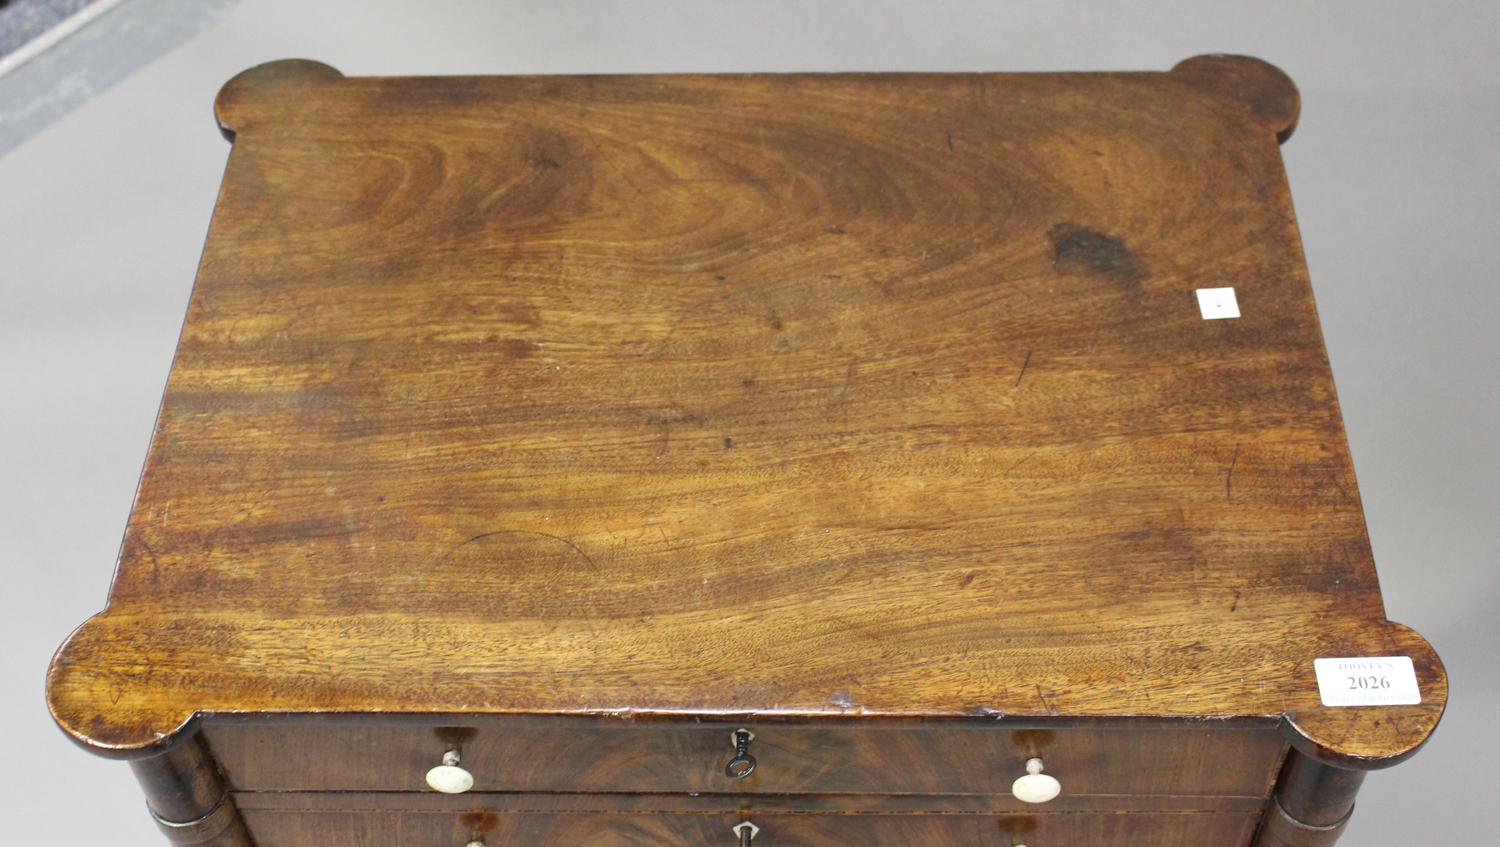 A George IV figured mahogany side table with projecting corners, the two drawers with bone handles - Image 8 of 8